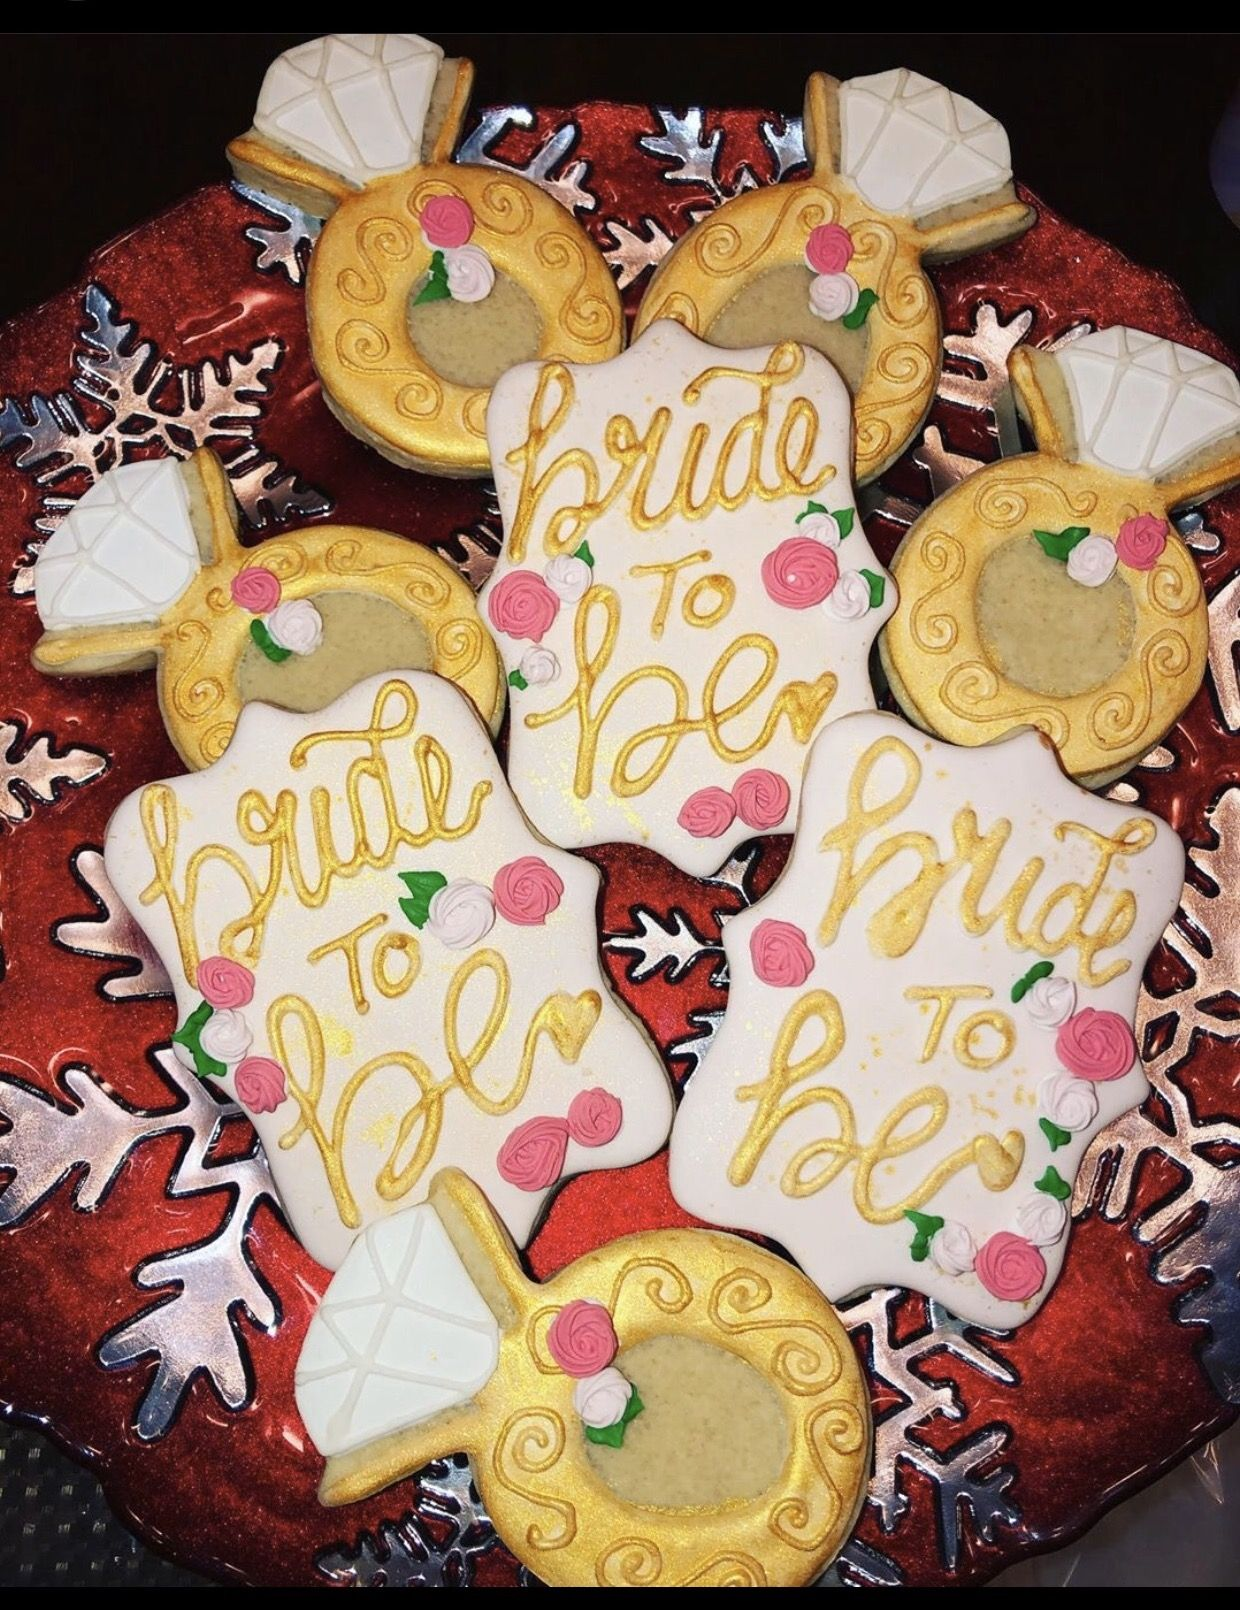 Bride To Be 💍 in 2020 Engagement cookies, Royal icing